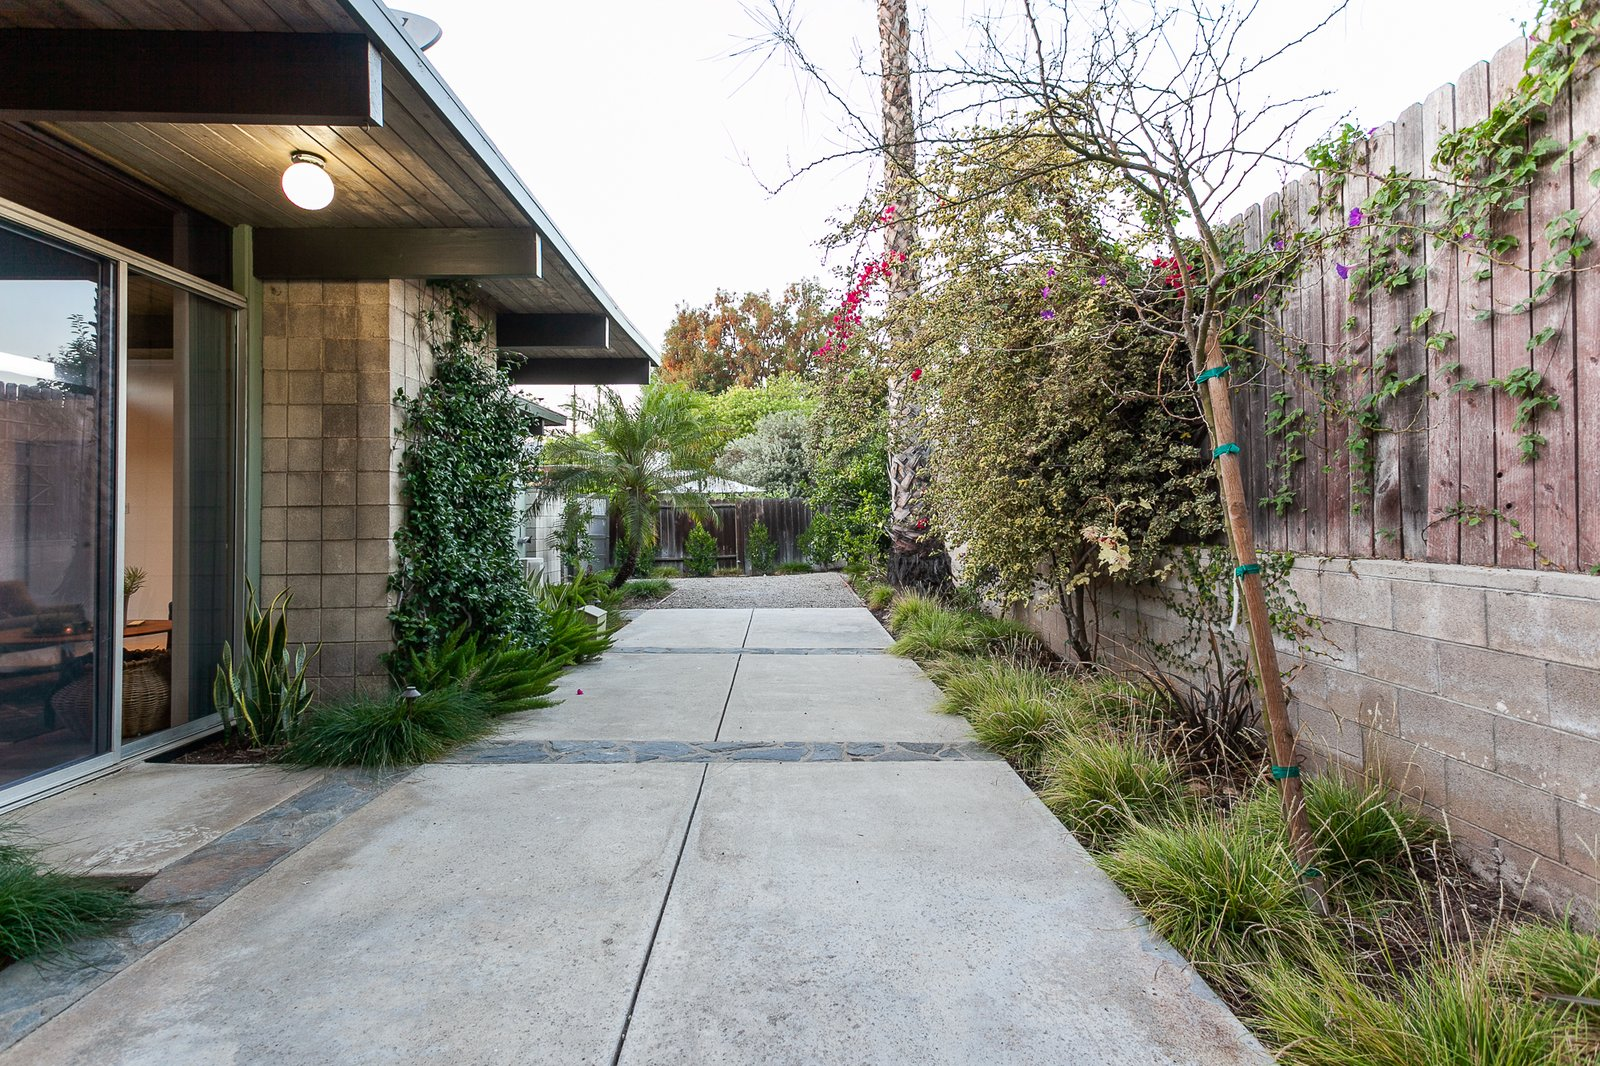 Outdoor, Large, Vertical, Pavers, Concrete, Side Yard, Stone, Concrete, Wood, Horizontal, Hanging, Trees, and Shrubs The home's elegant post-and-beam construction as seen from the exterior.    Best Exterior Glass Brick Wood Photos from An Updated Eichler With an Indoor-Outdoor Master Bath Seeks $1.15M